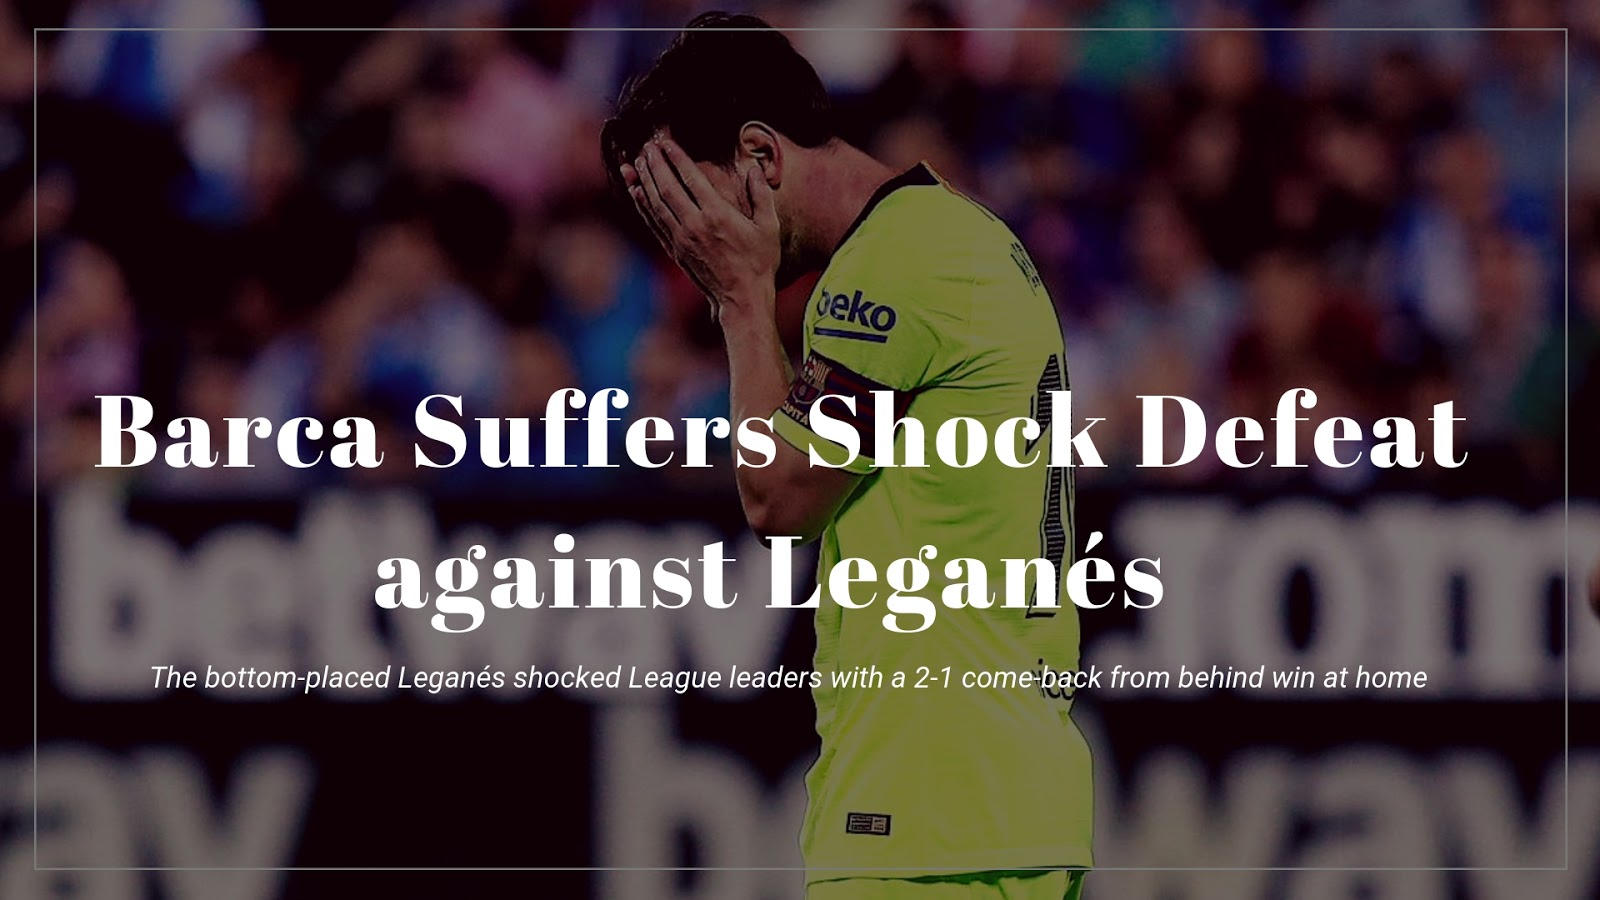 Leganes defeats Barcelona by 2-1 in La Liga 2018-19 Season #barca #fcbarcelona